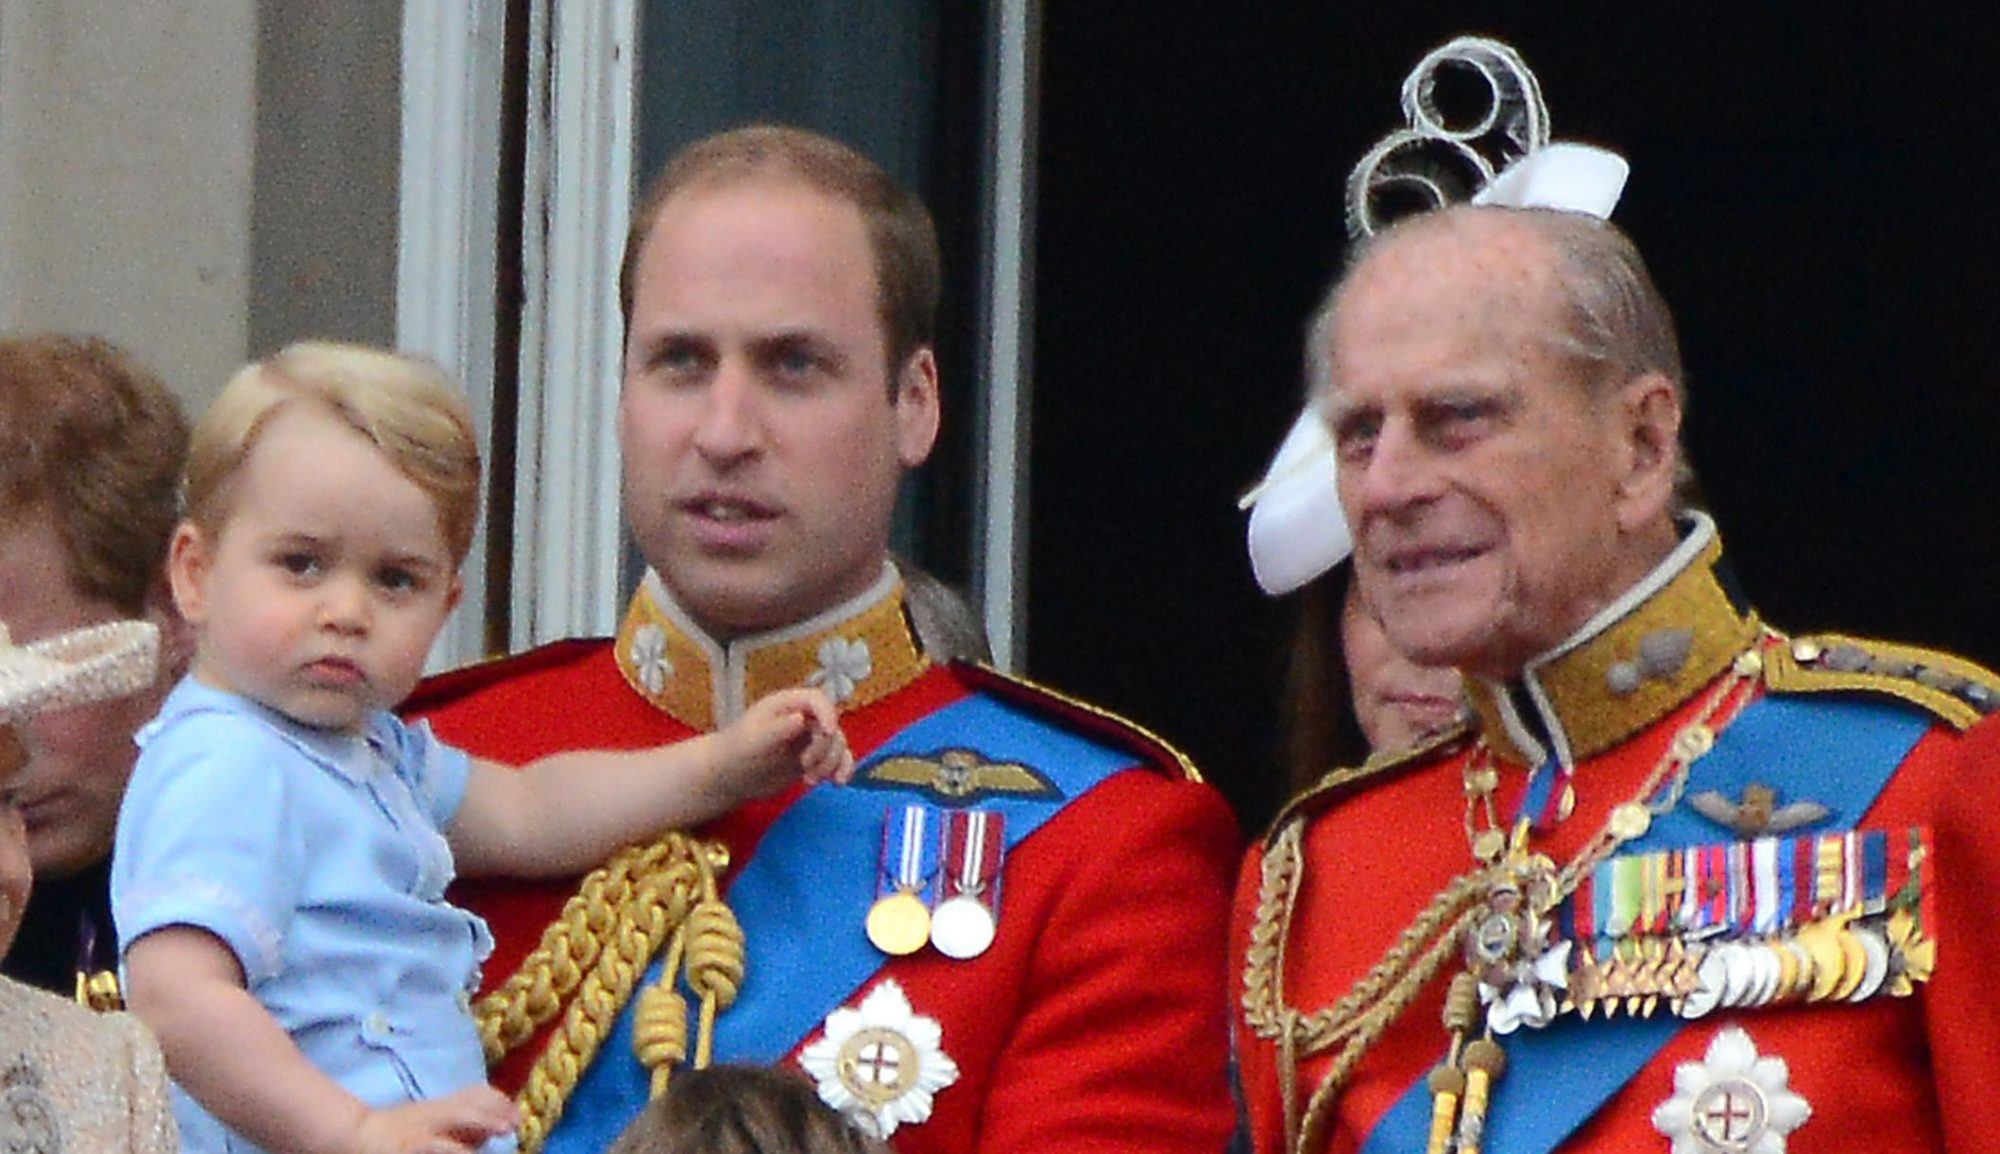 Prince Philip with Prince William and Prince George